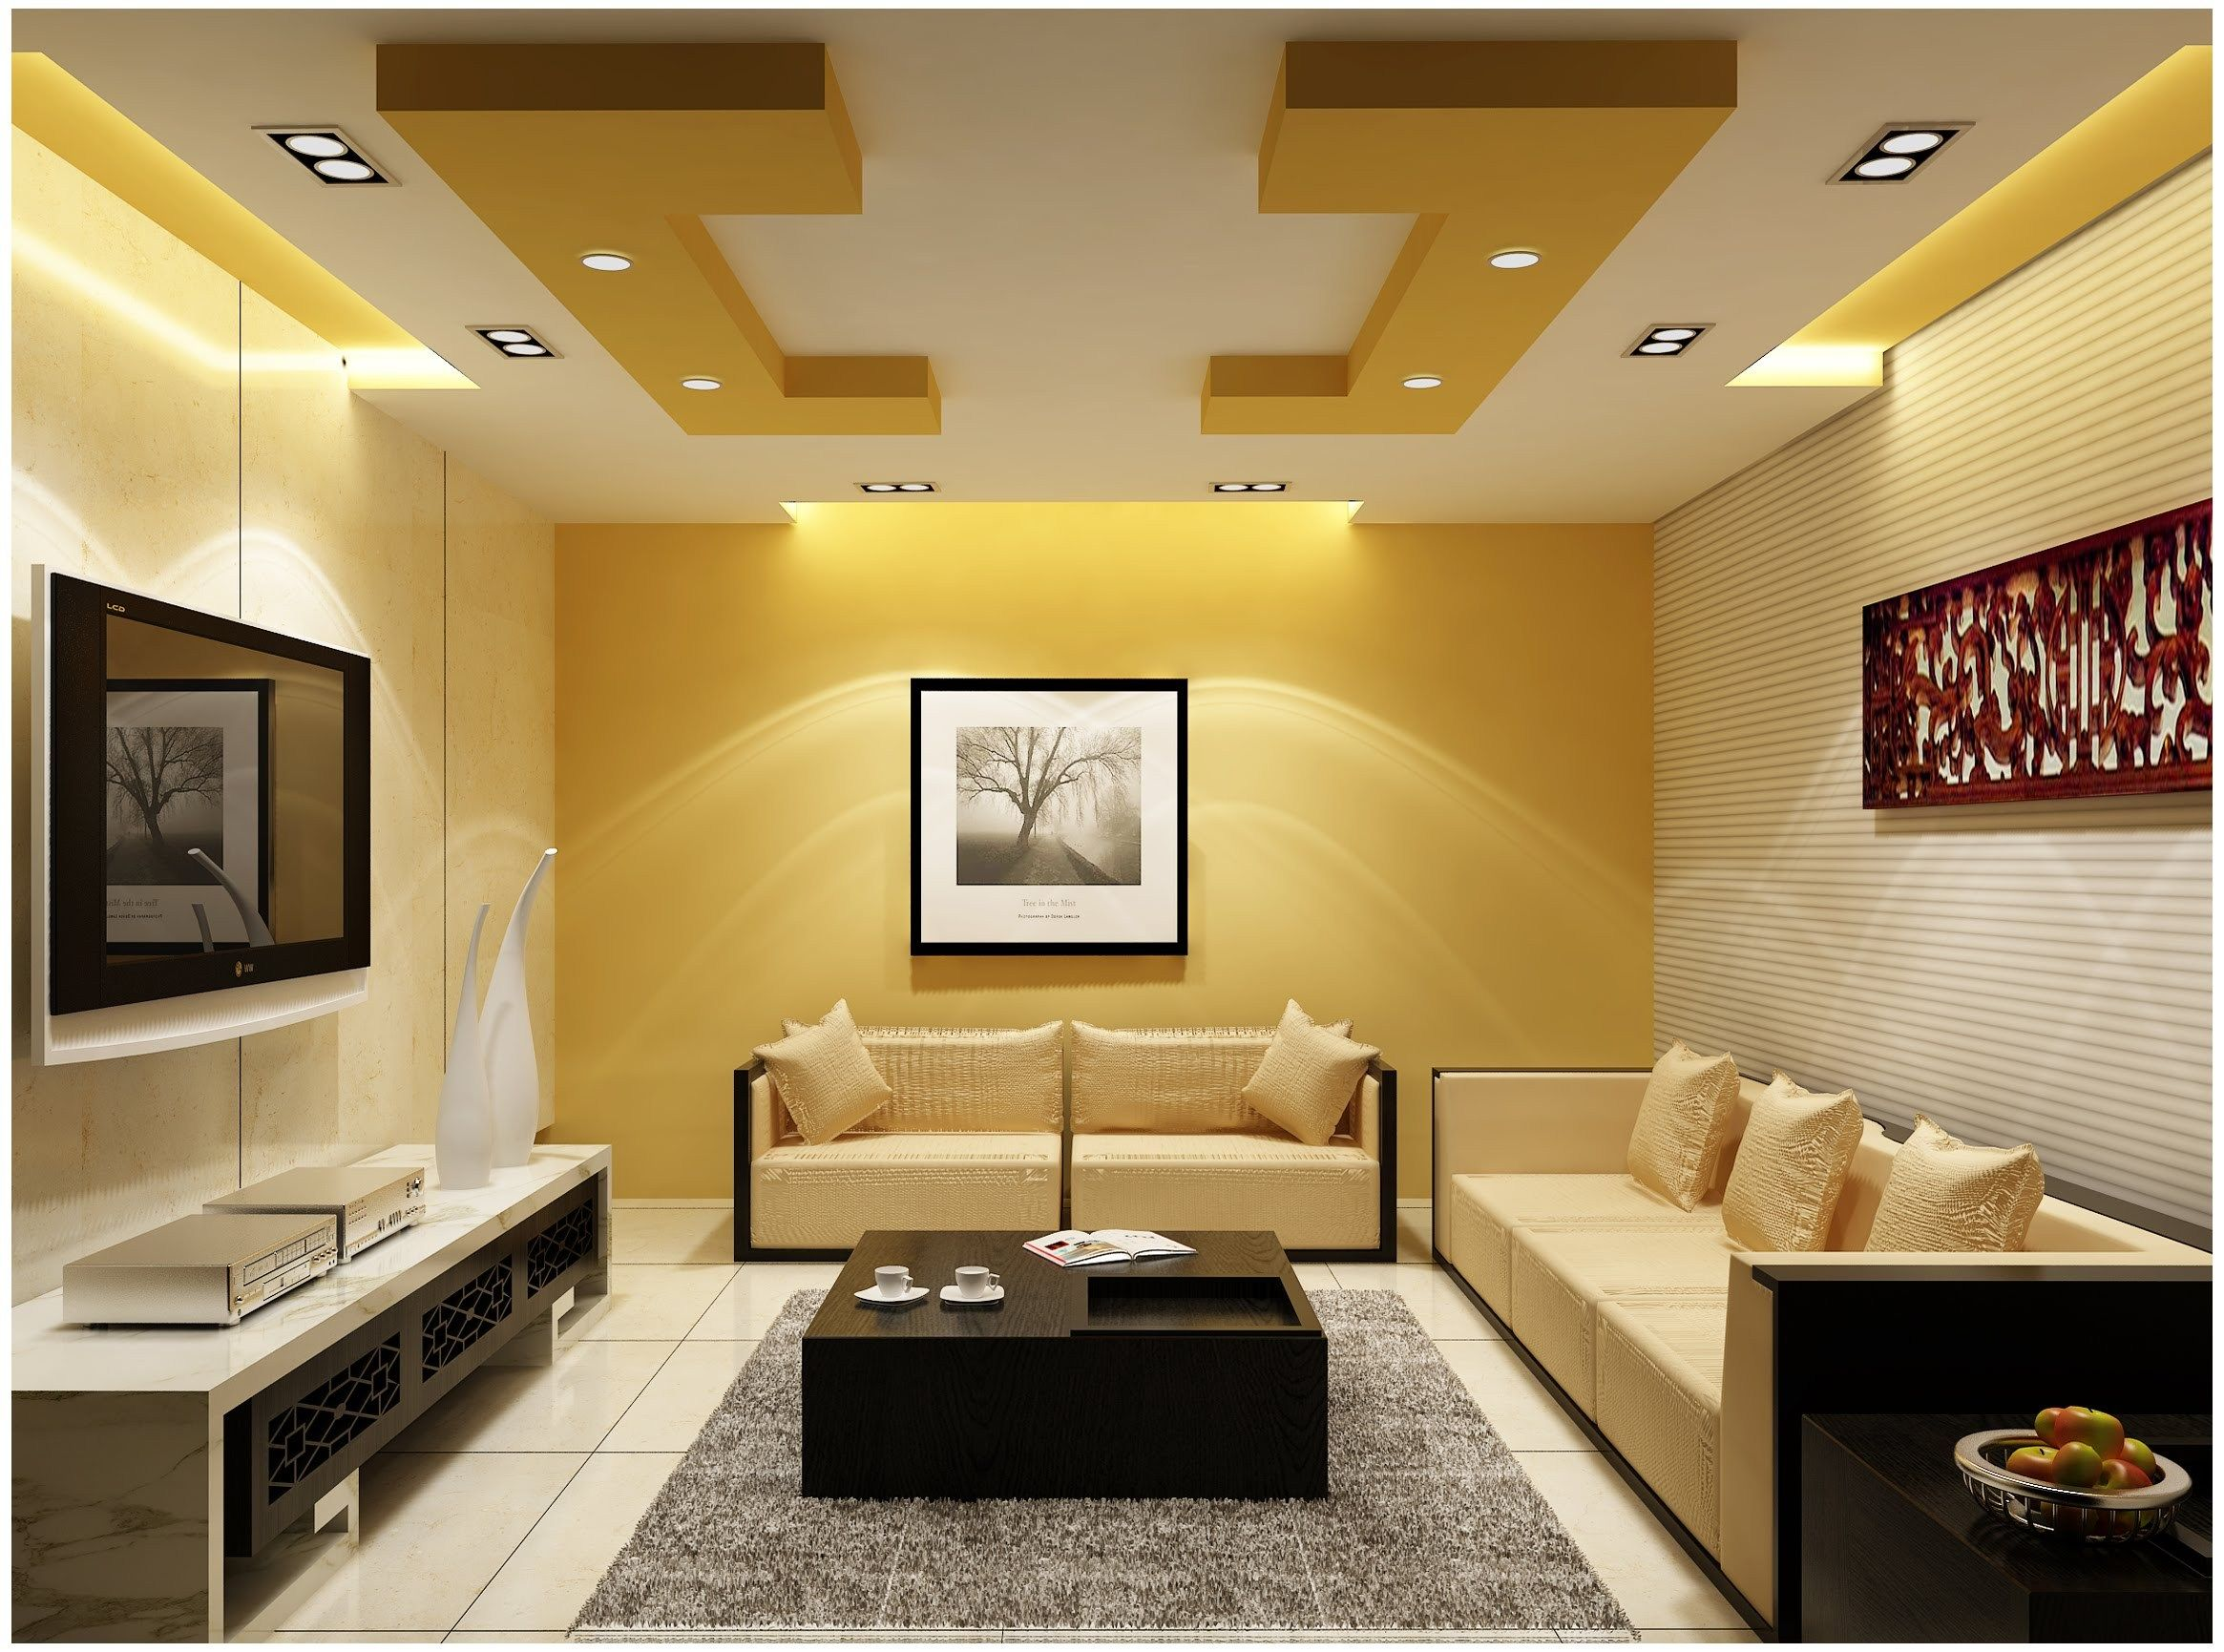 Best Room Lighting. Lighting Design Living Room Cool Modern Lights ...